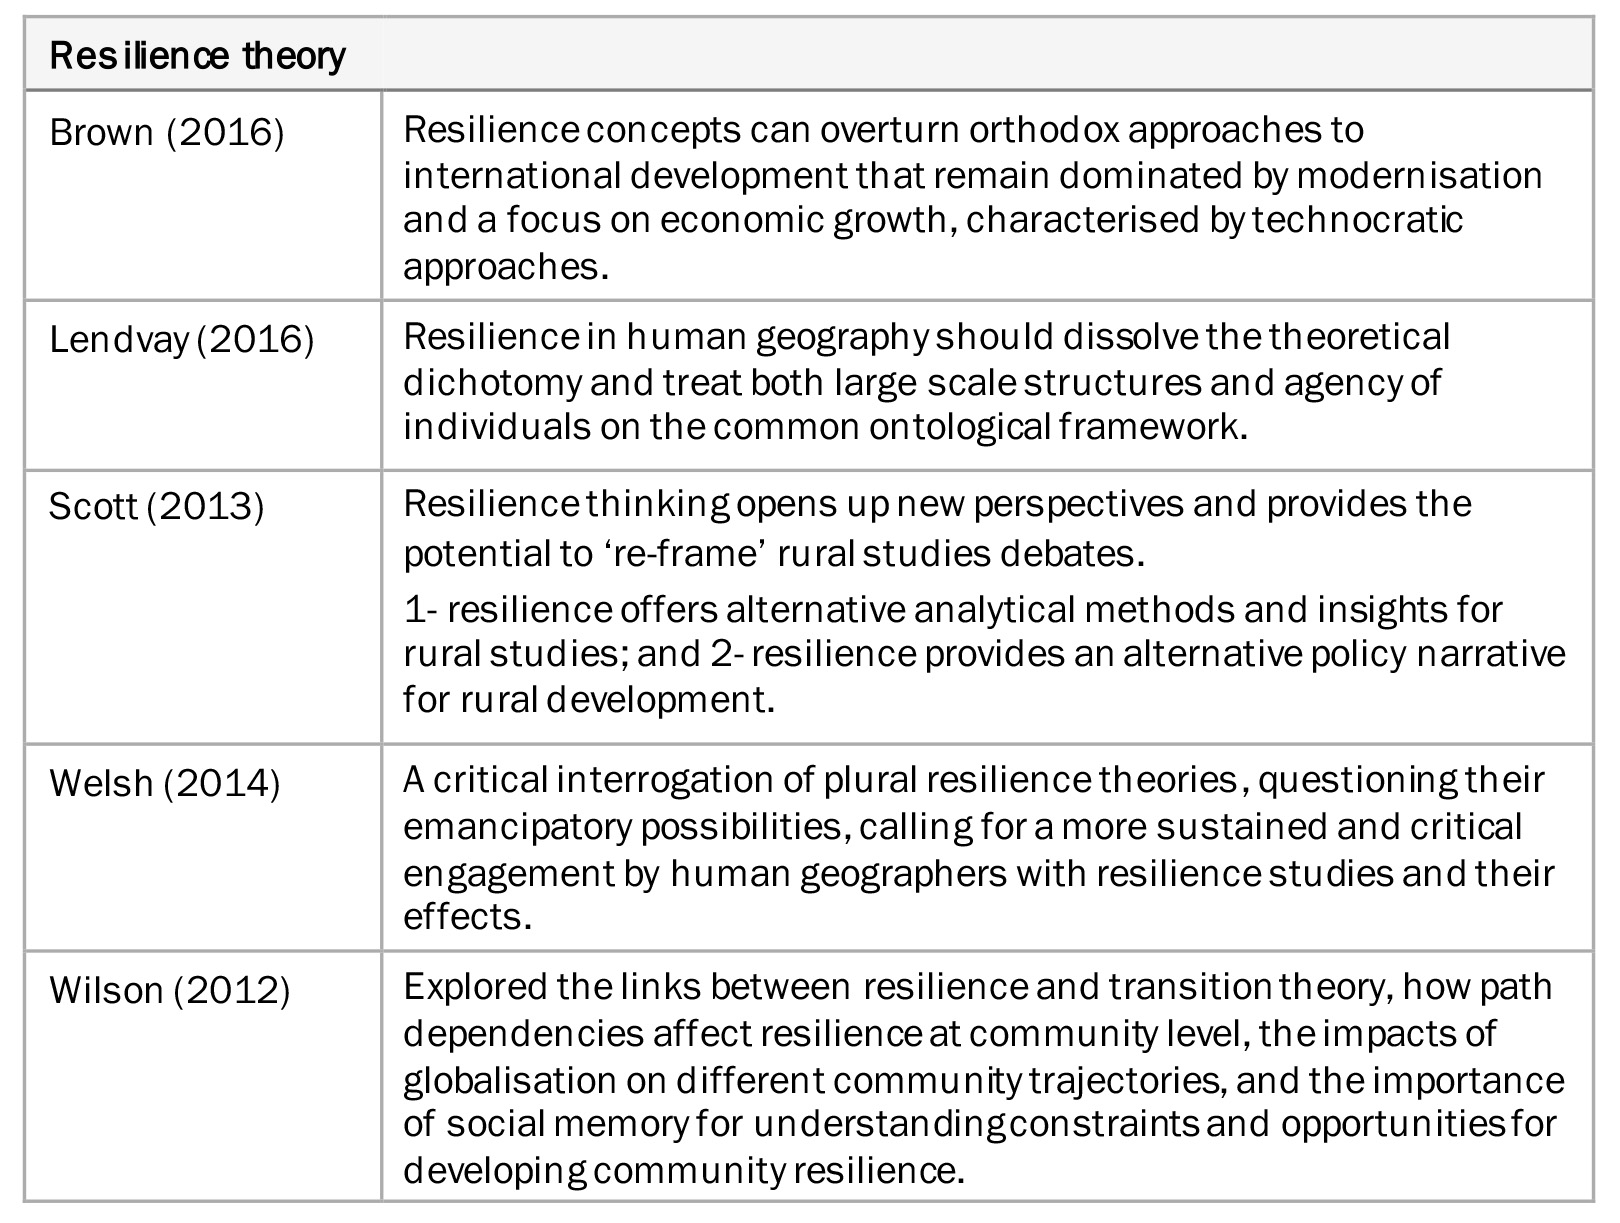 A list of resilience theories about development in the age of uncertainty and recurrent crises